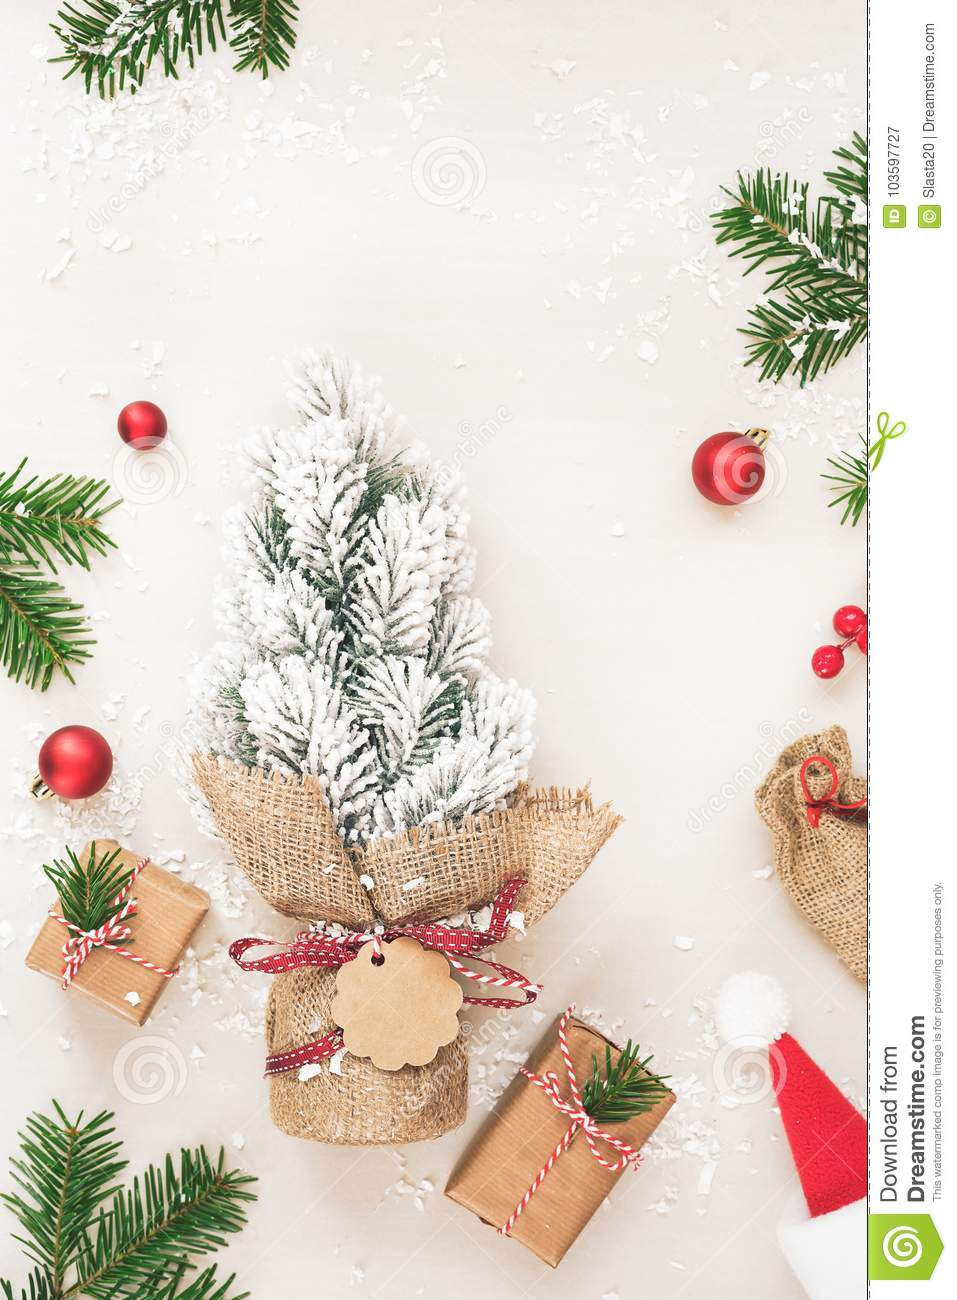 Christmas Frame Of Gifts And Fir Tree On White Stock Image - Image ...